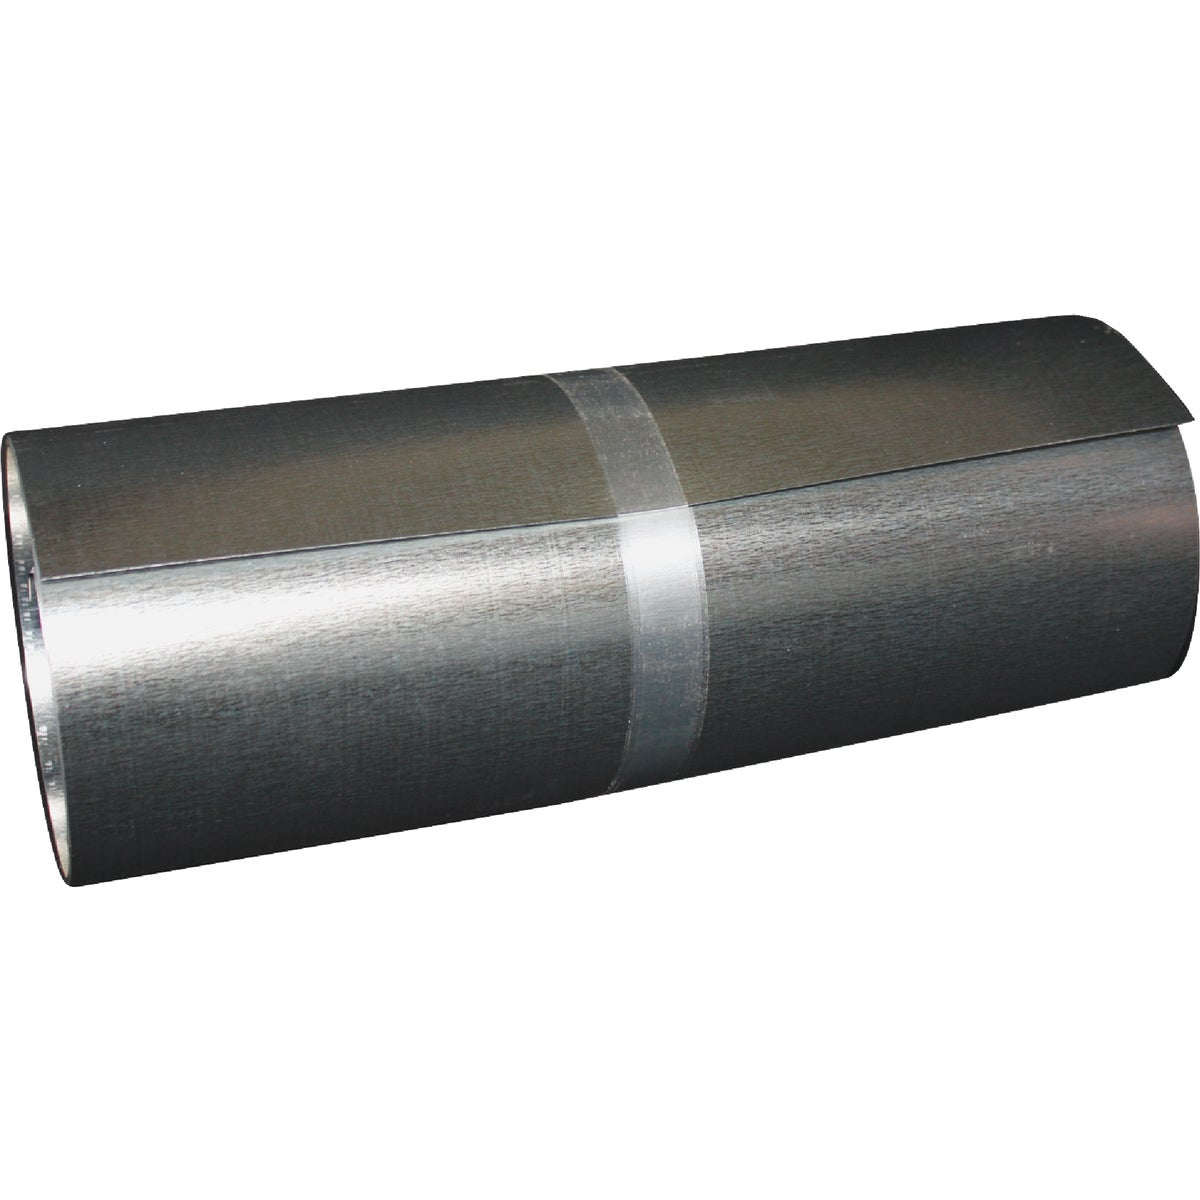 "8""X50' GALV ROLL VALLEY - 30020-GV10 by Klauer Mfg Co"